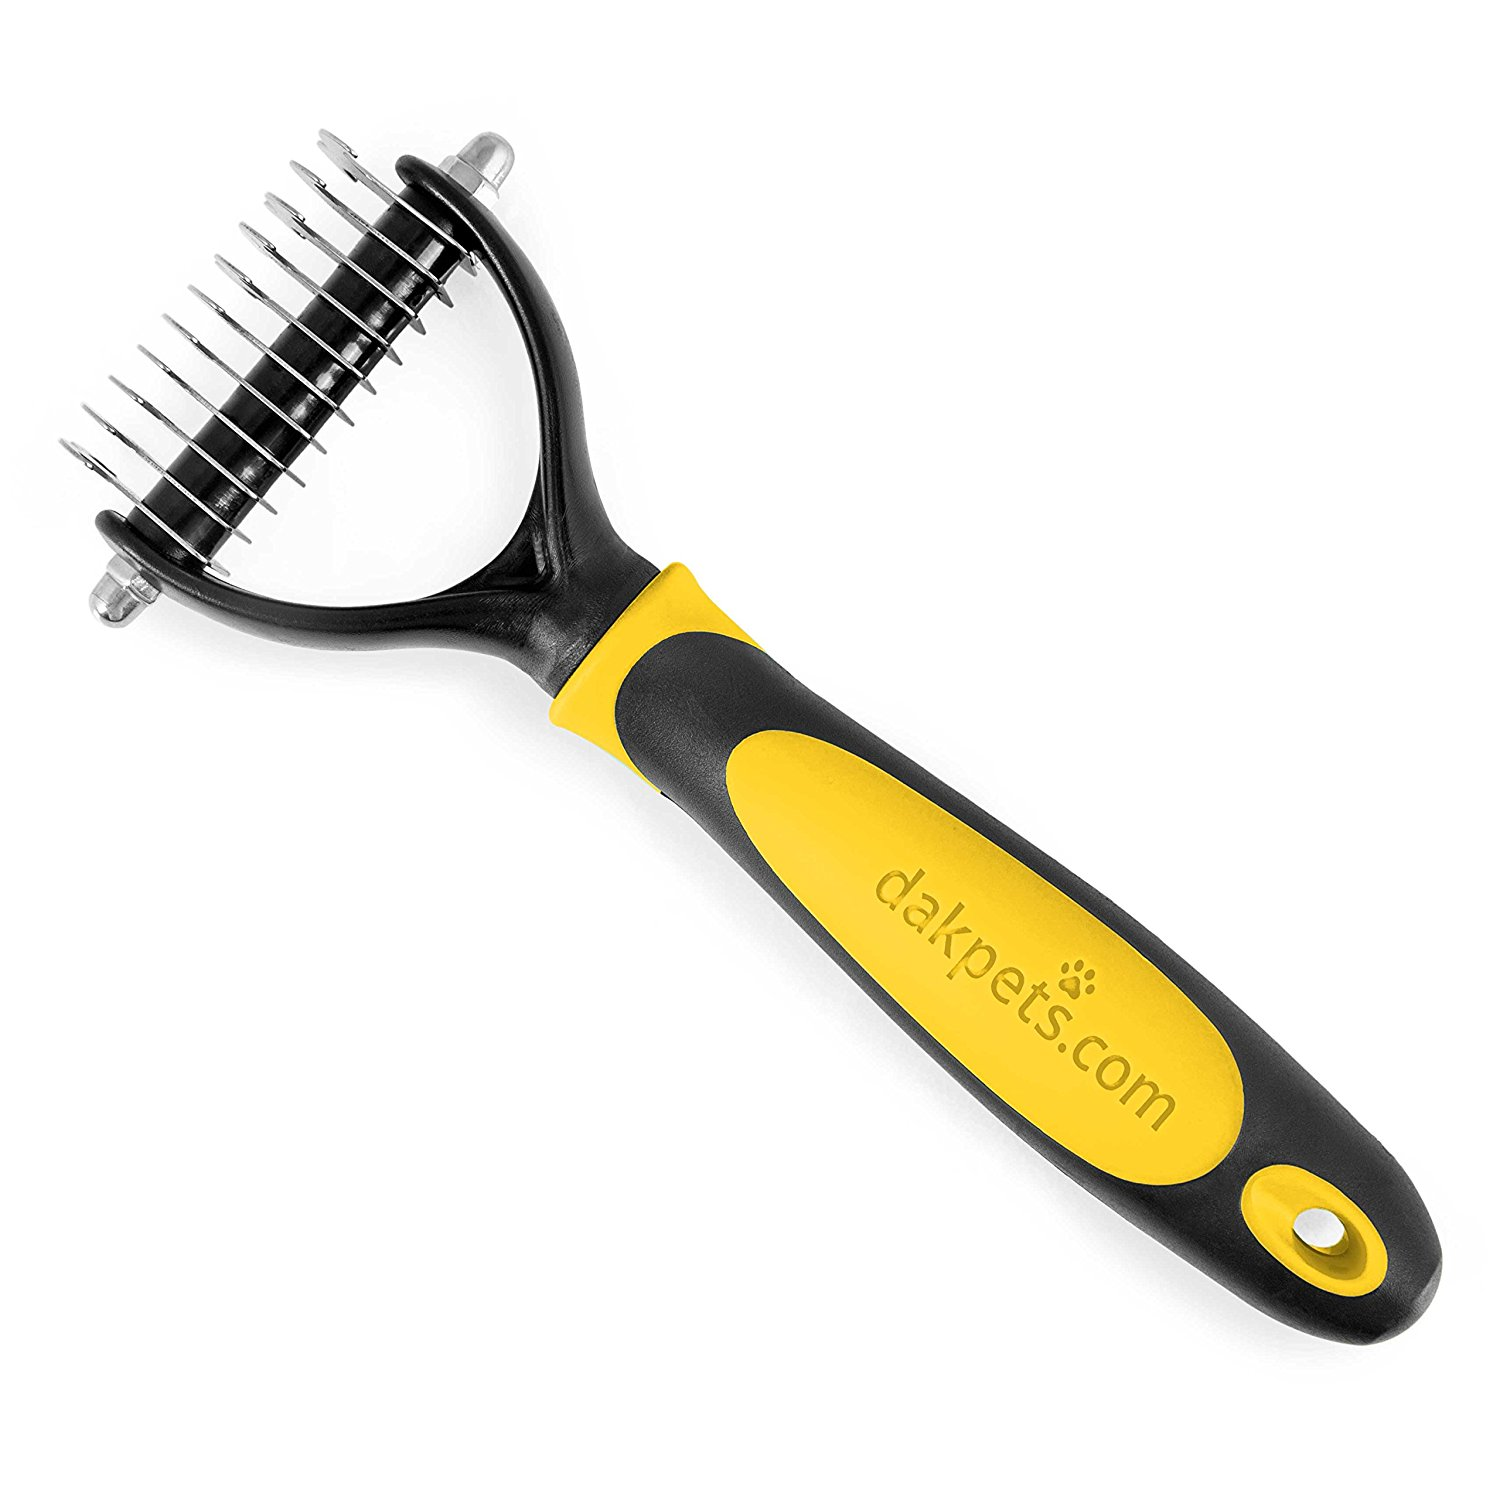 DakPets Dematting Tool for Dogs & Cats - Professional Rake Brush Grooming Comb for Undercoat Removal